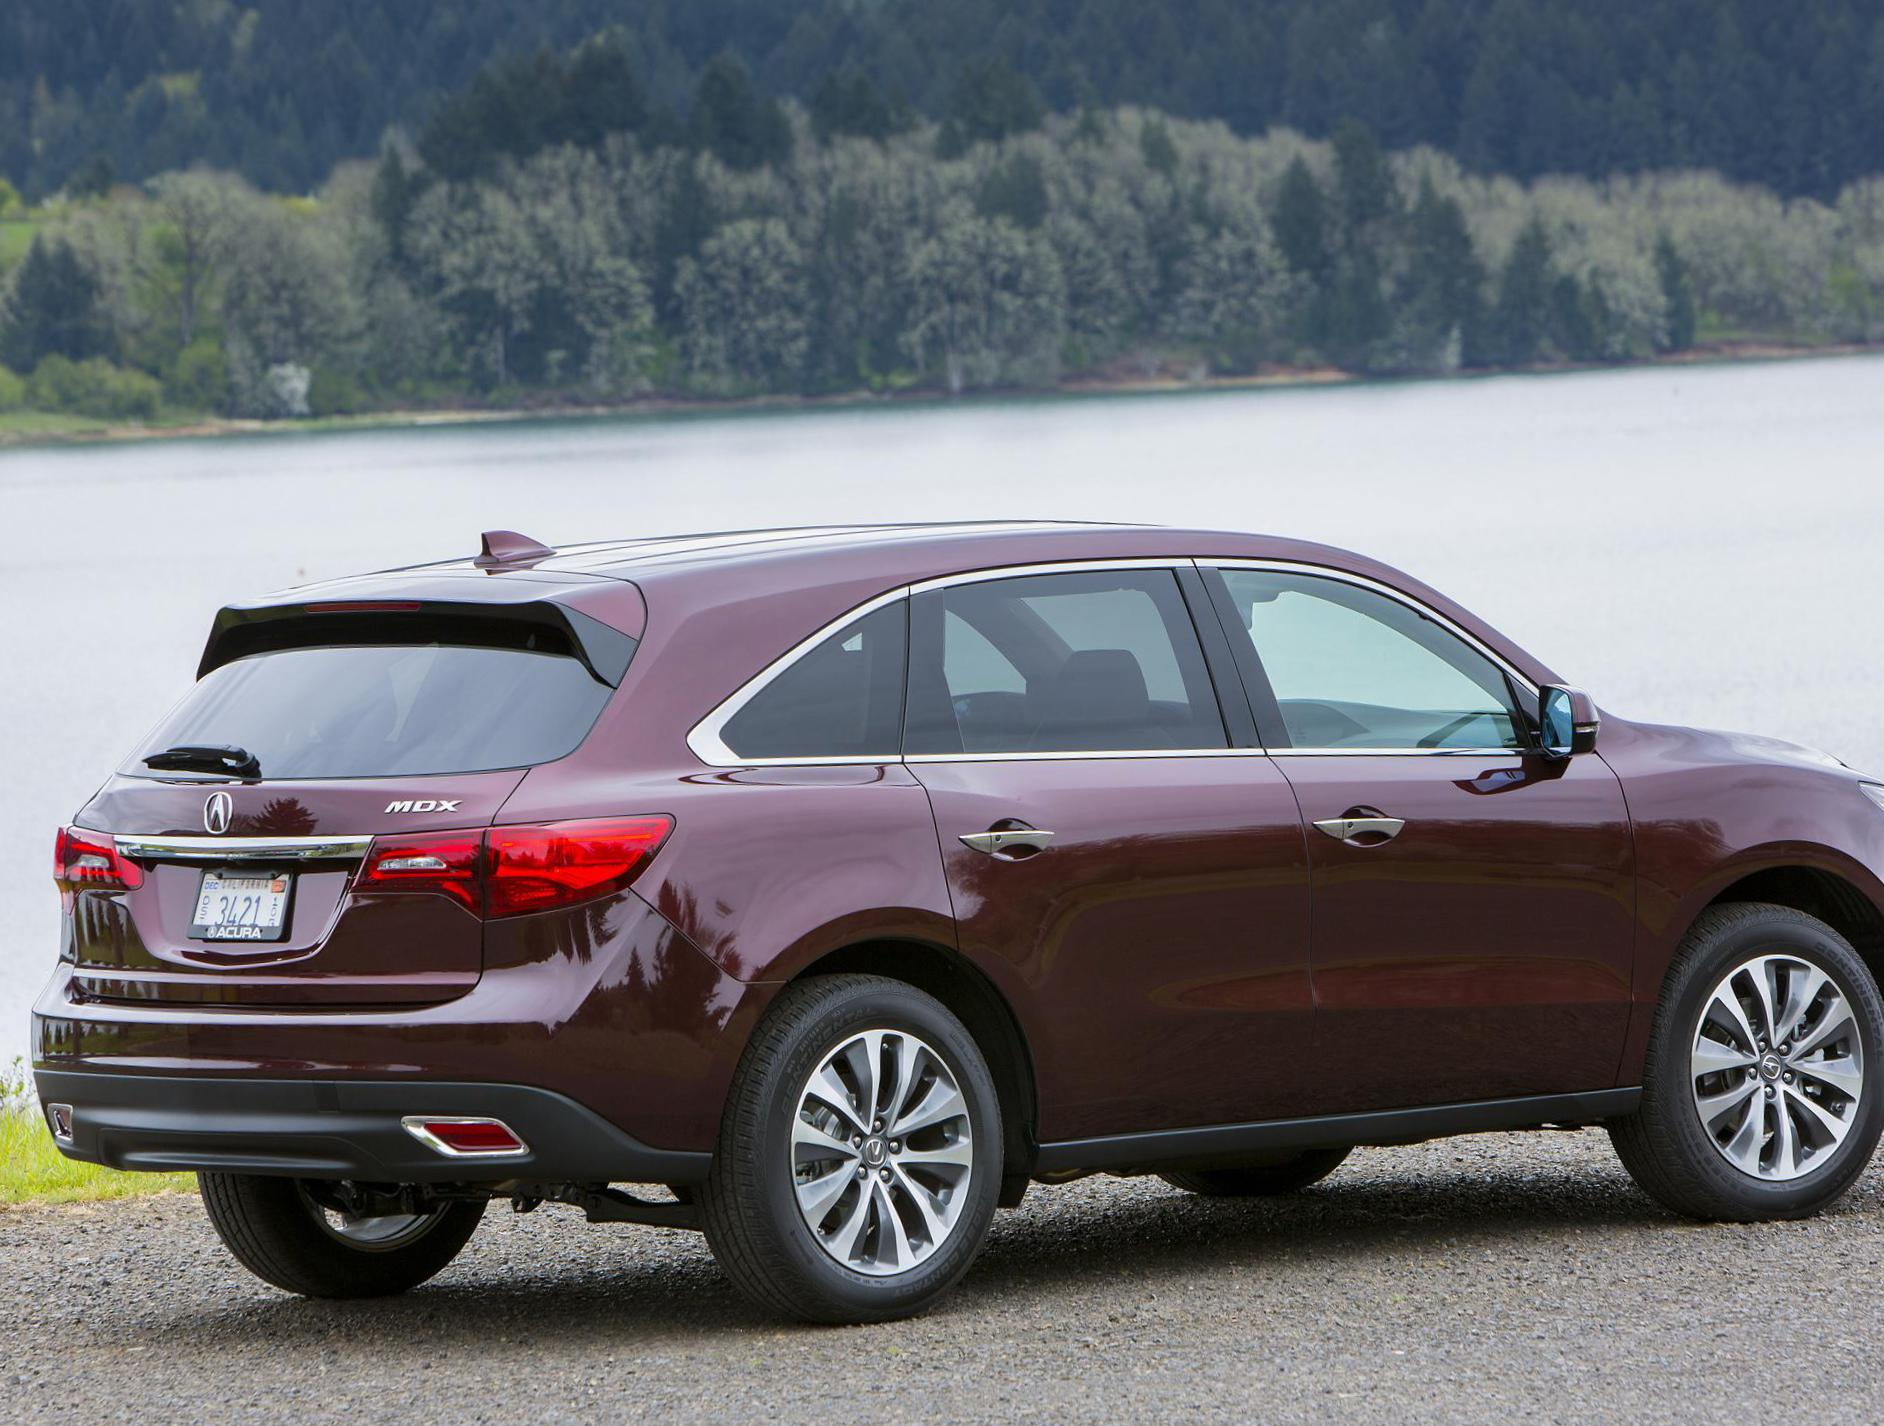 MDX Acura how mach 2013